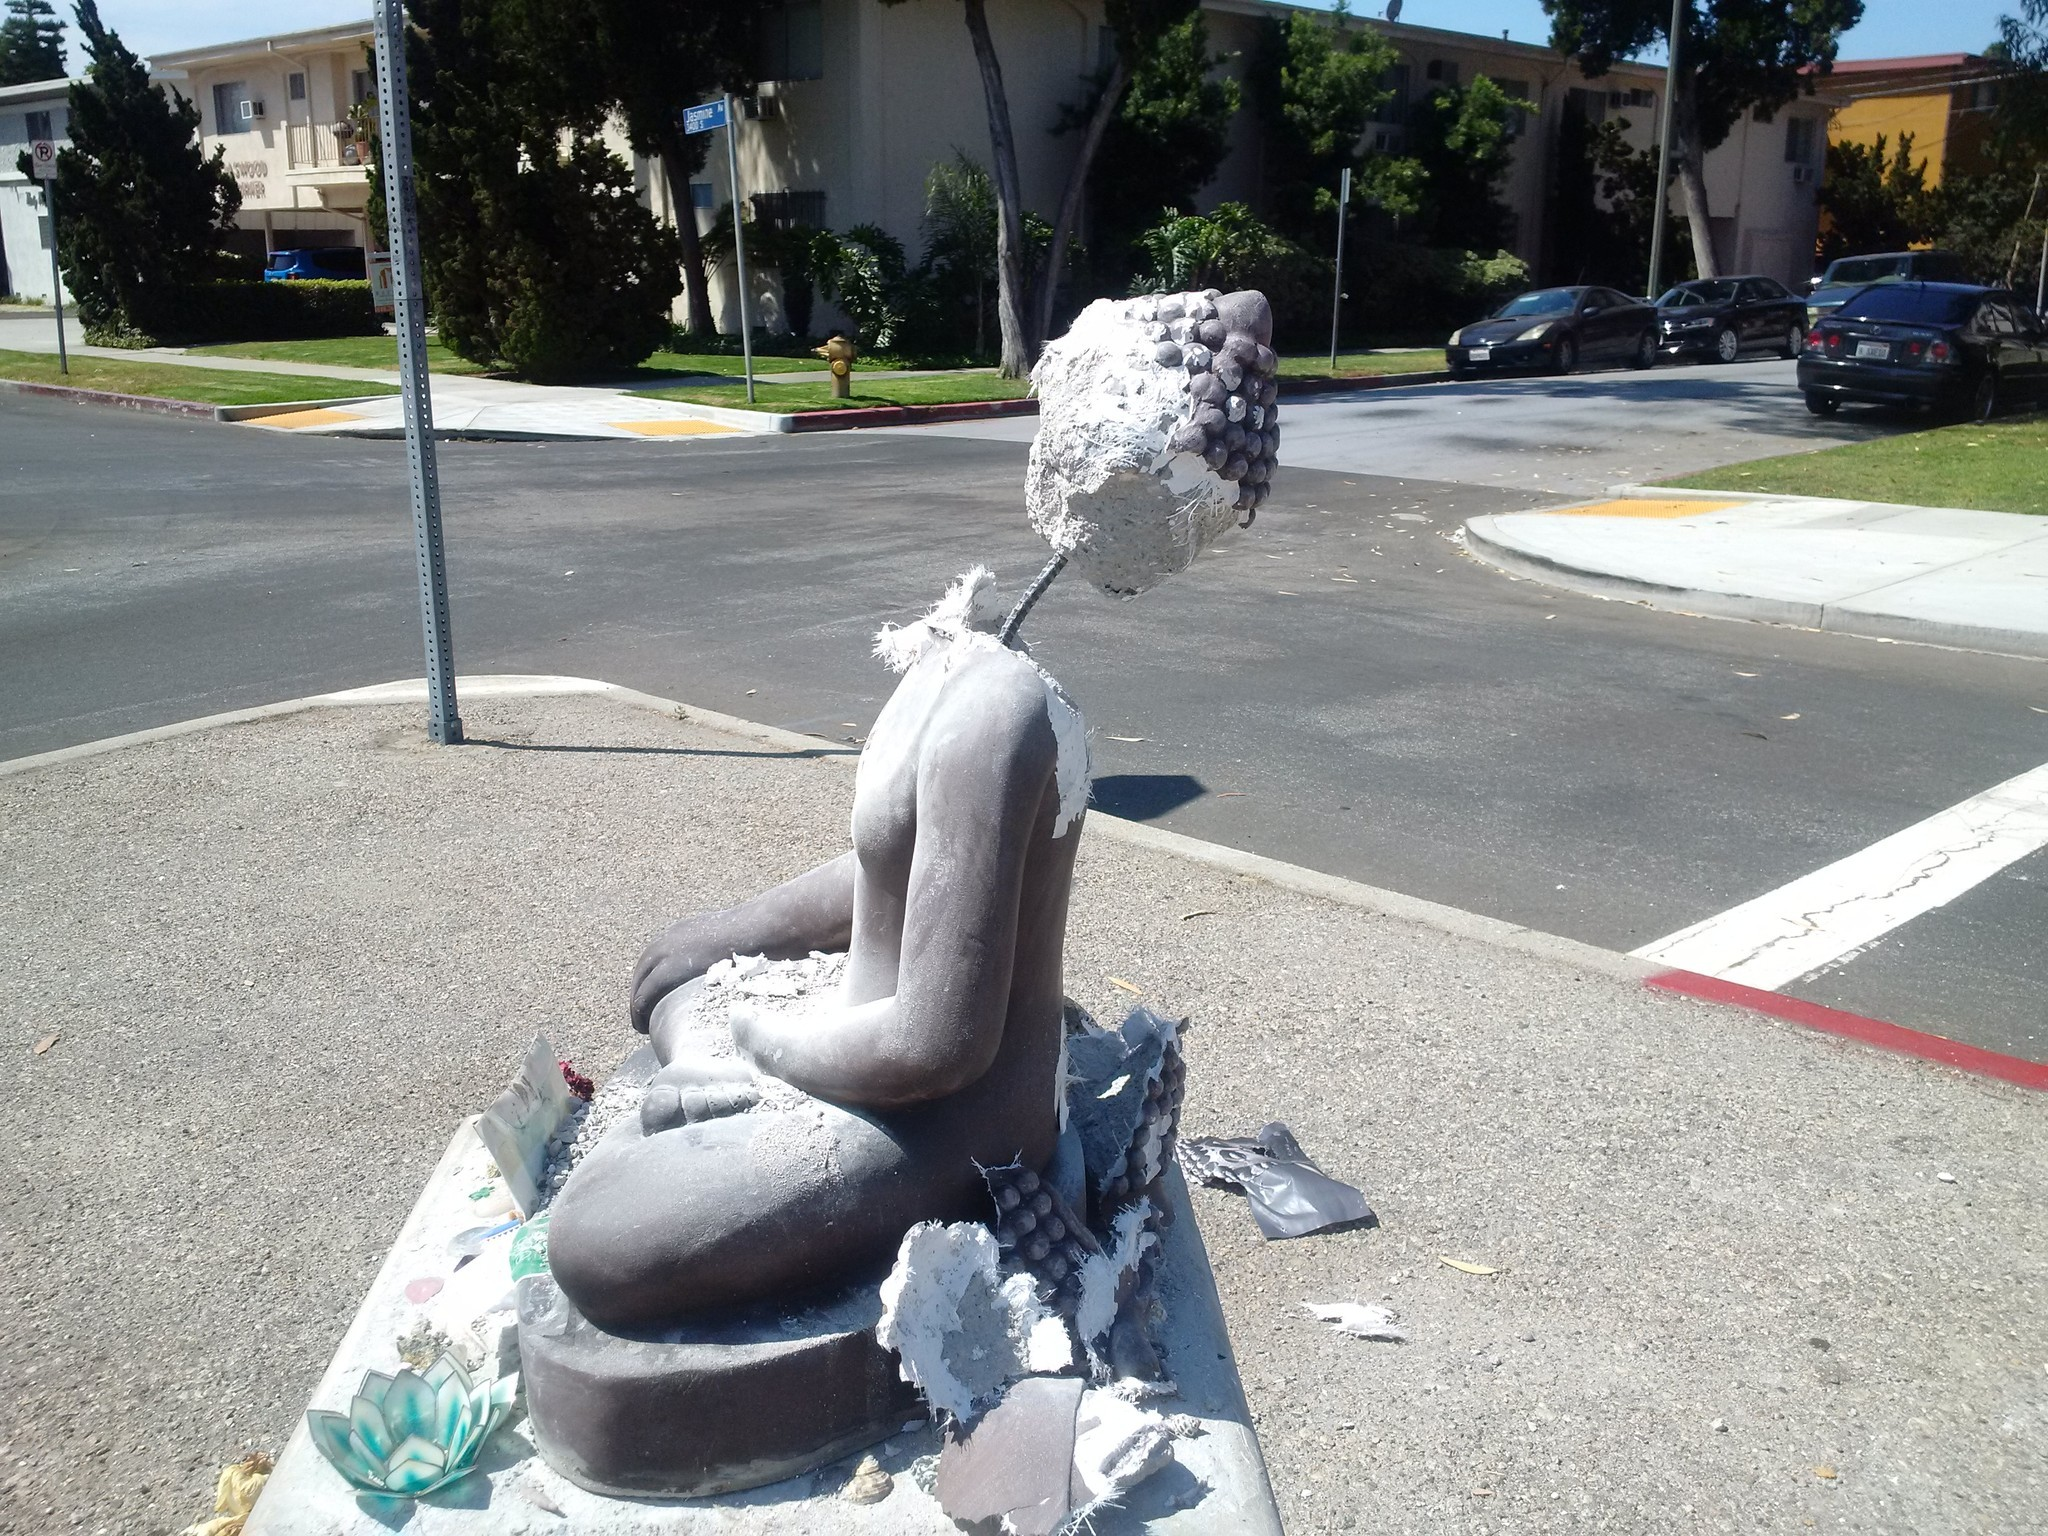 After several attempts, the vandal nearly decapitated the Buddha statue. Residents say they plan to replace it with a third one, but it will be made from metal.